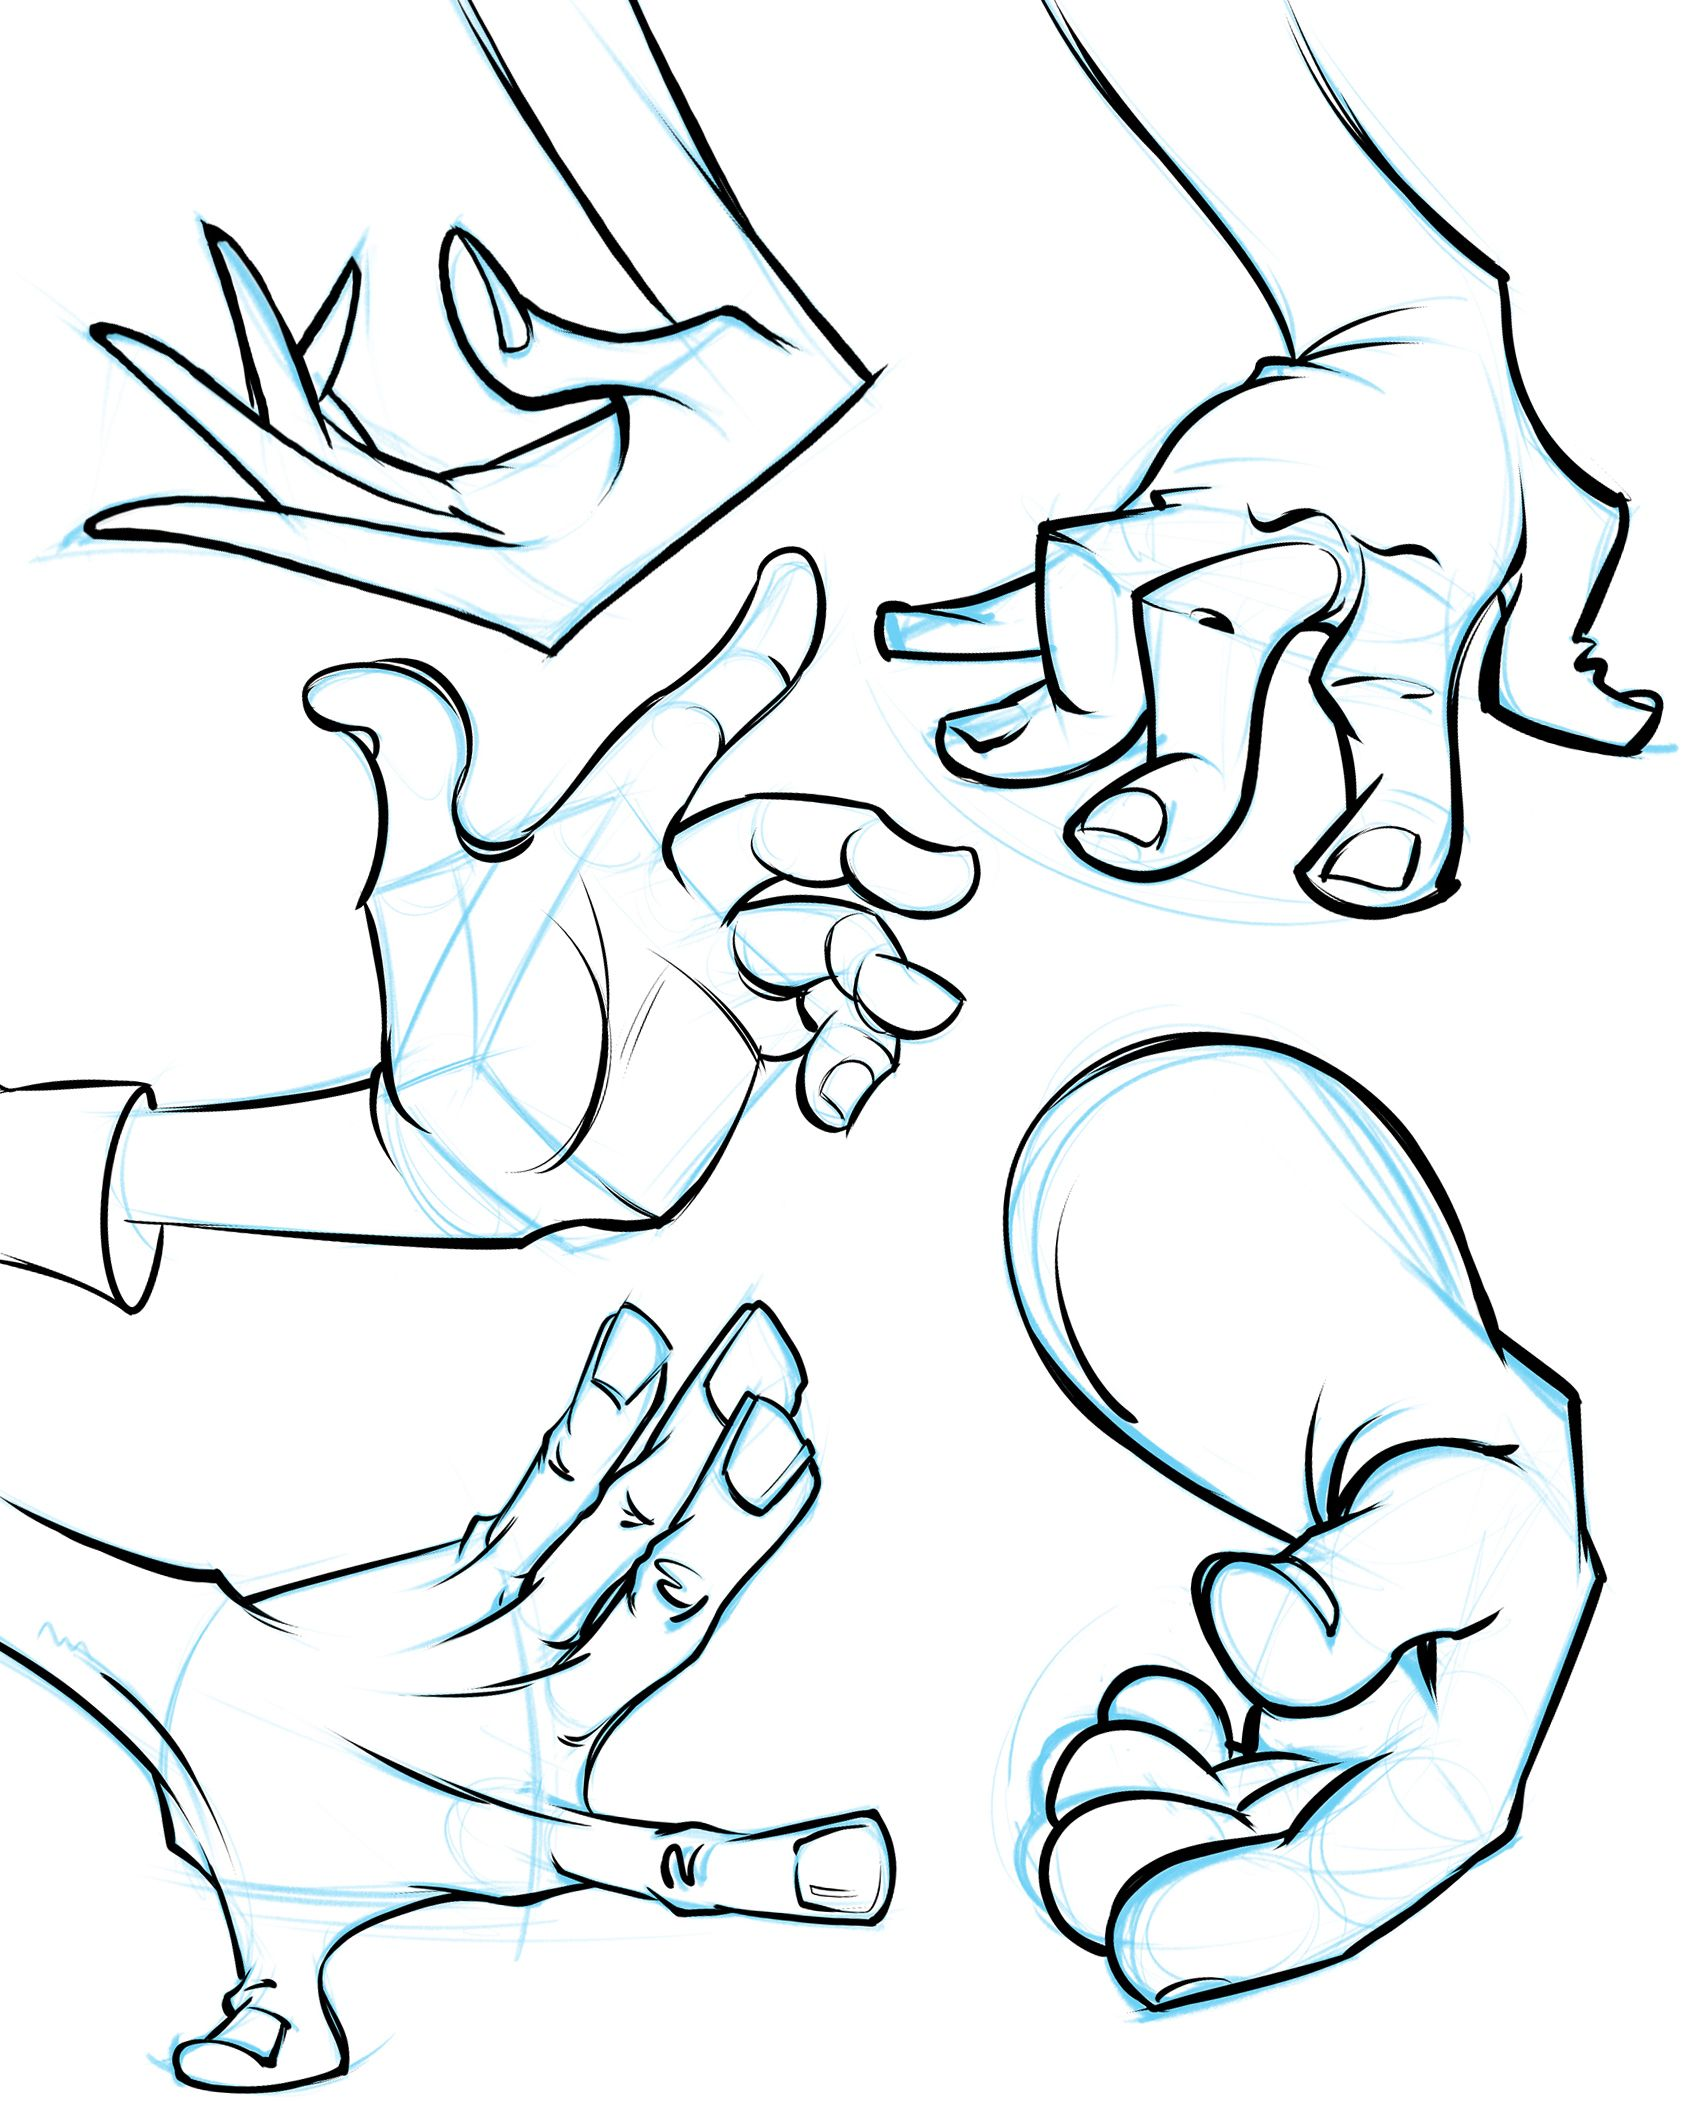 A collection of cartoon hands from my cartoon hand demo learn how to draw hands like this at proko com 217